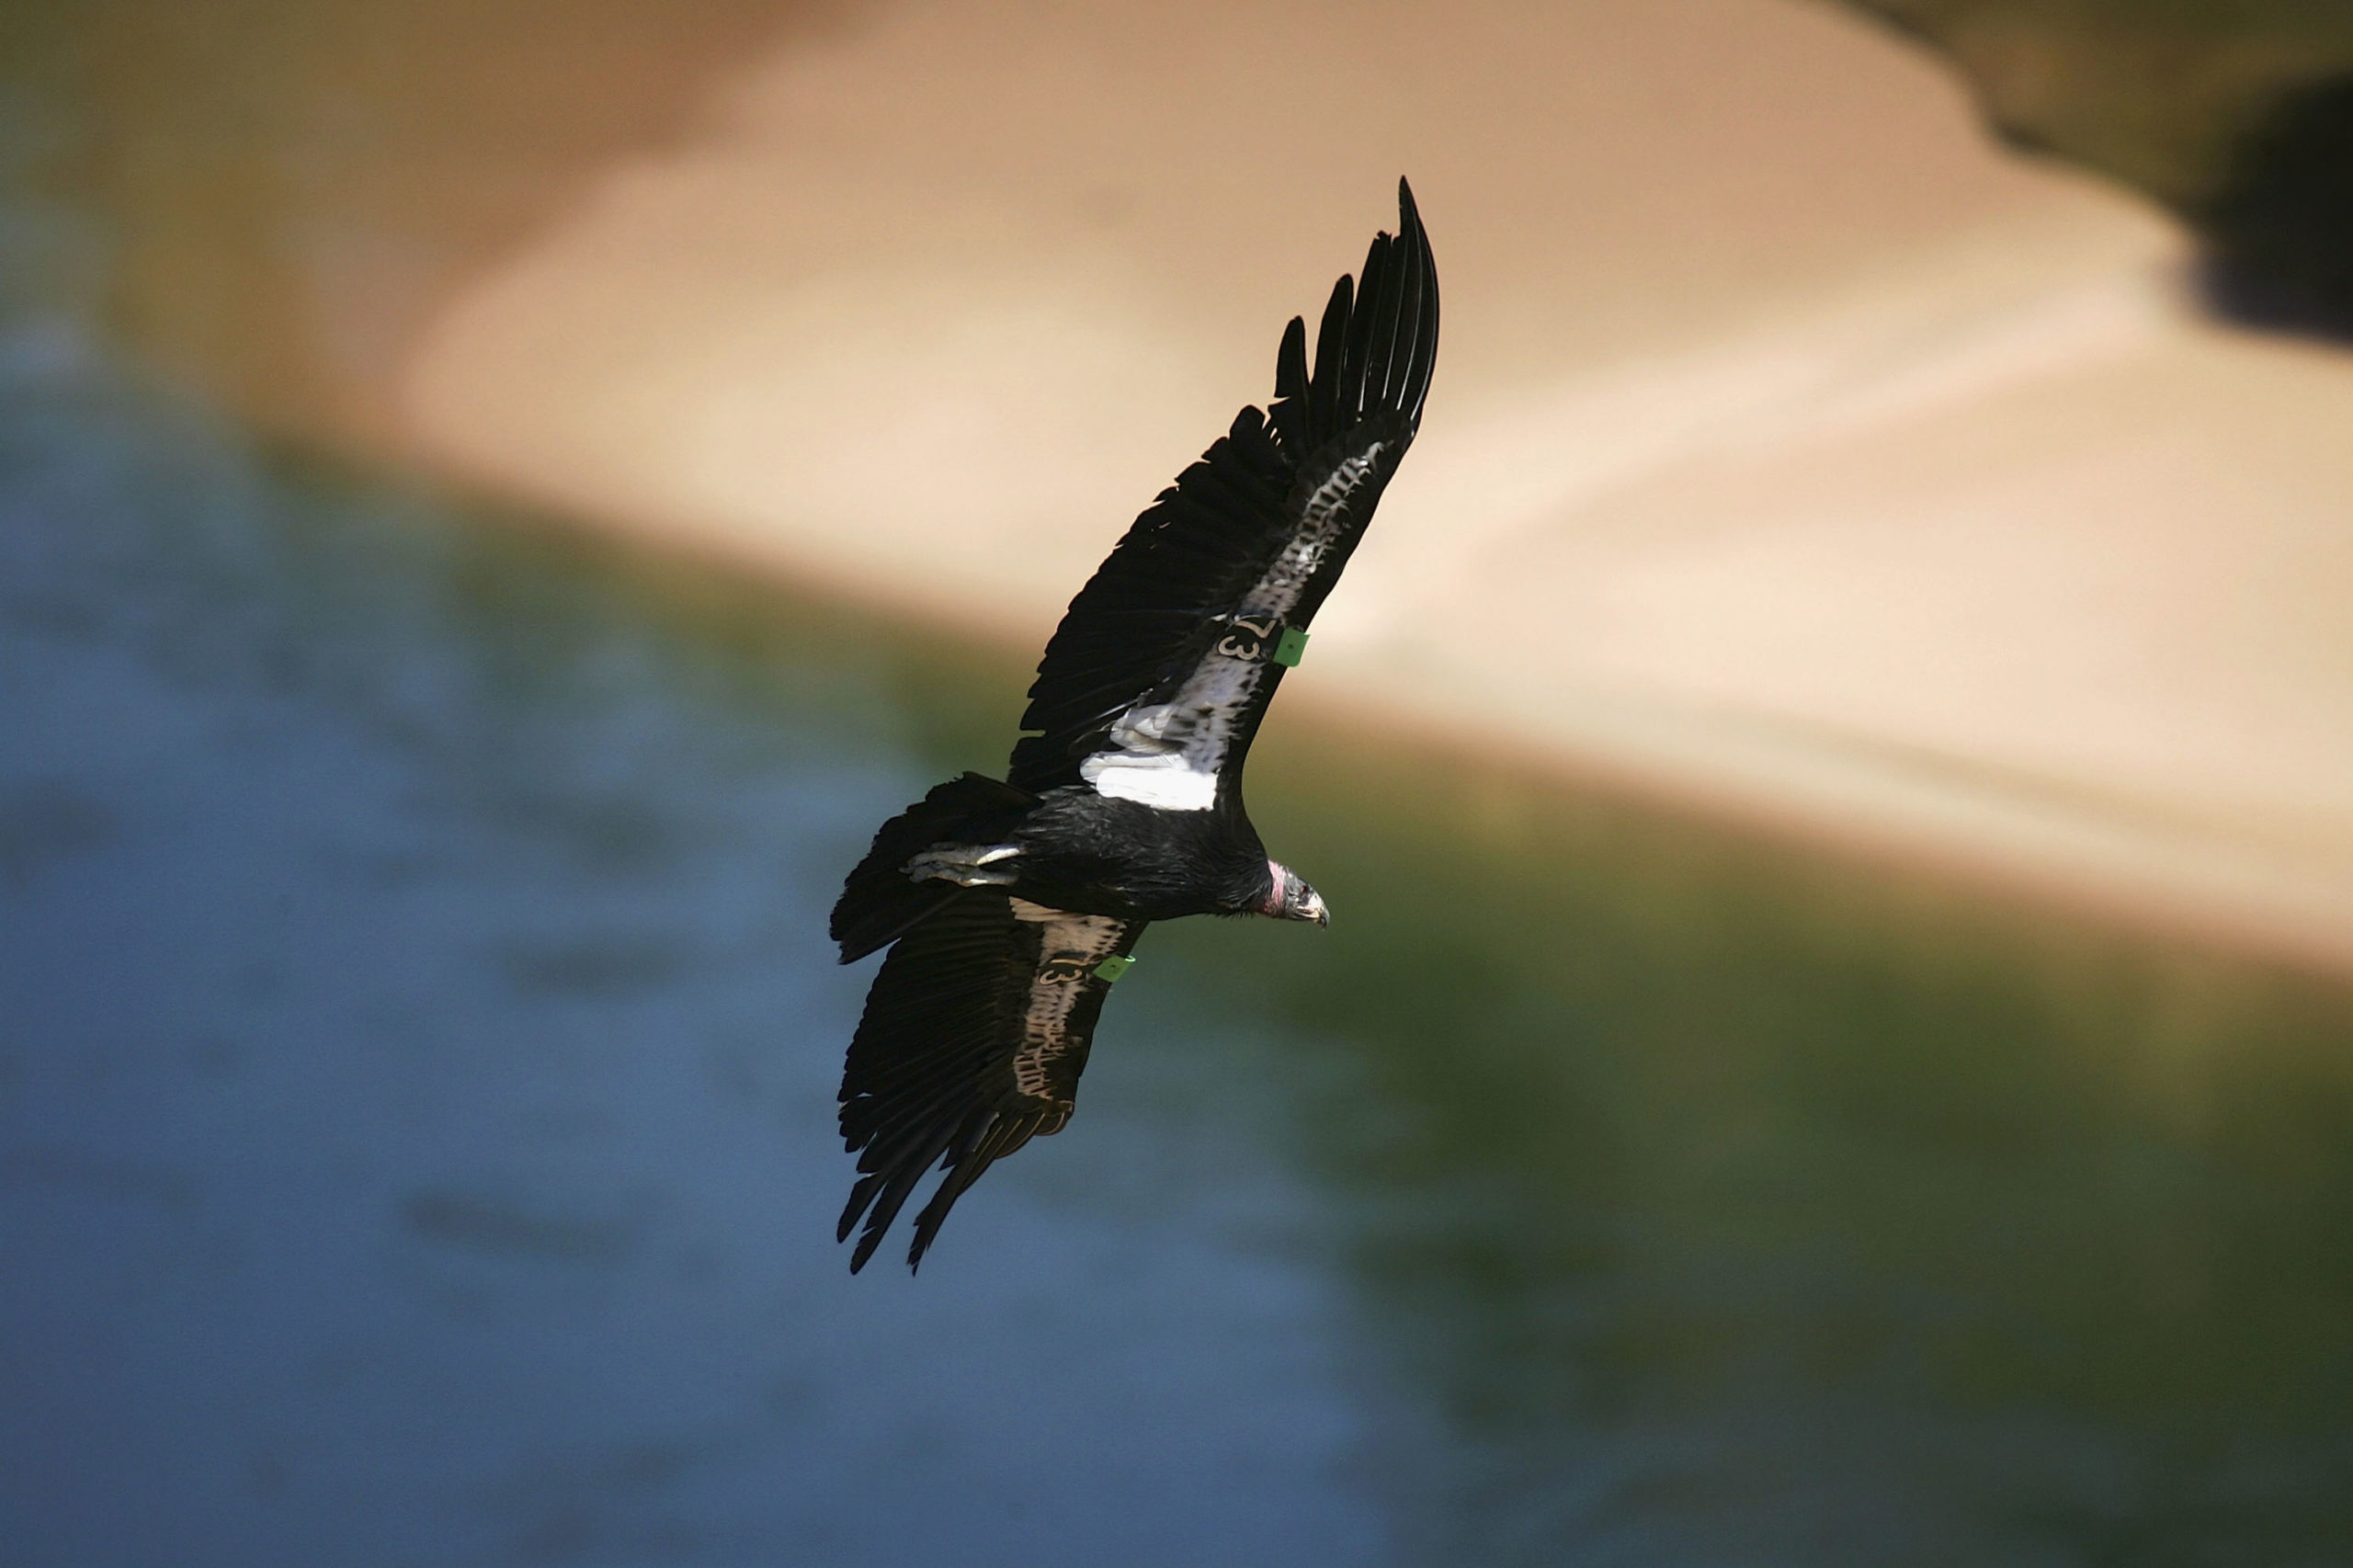 PAGE, AZ - MARCH 24: A rare and endangered California condor flies over the Colorado River in Marble Gorge, east of Grand Canyon National Park, on March 24, 2007 west of Page, Arizona. Condor managers taking blood samples from the 57 wild condors in Arizona both before and after hunting season find that all 57 condors test positive for contamination by lead matching the isotropic fingerprint of the lead commonly used in ammunition, and that those levels rise significantly by the end of the season. Many of the condors become so sick that biologists must re-capture them for lead-poisoning treatments. Several die each year. Experts believe the condors are ingesting the lead as they scavenge gut piles left behind hunters because lead bullets shatter and fragment inside the kill. Officials in Arizona are encouraging hunters to use copper bullets instead of lead-based ammunition and in California, a coalition of conservation groups has sued the California Fish and Game Commission in an effort to force a ban on lead ammunition in Condor ranges. The condors in the Marble Canyon and Vermillion Cliffs area easily fly as far west as Lake Mead, by way of the Grand Canyon, and to Zion National Park and far into Utah. With a wingspan up to 9 ? feet, they are the largest flying birds in North America. In 1982, when the world population of California condors dropped to only 22 and extinction was believed eminent, biologist captured them and began a captive breeding and release program which has increased the total population to 278, of which 132 now live in the wild in Arizona, California, and Baja California, Mexico. (Photo by David McNew/Getty Images)